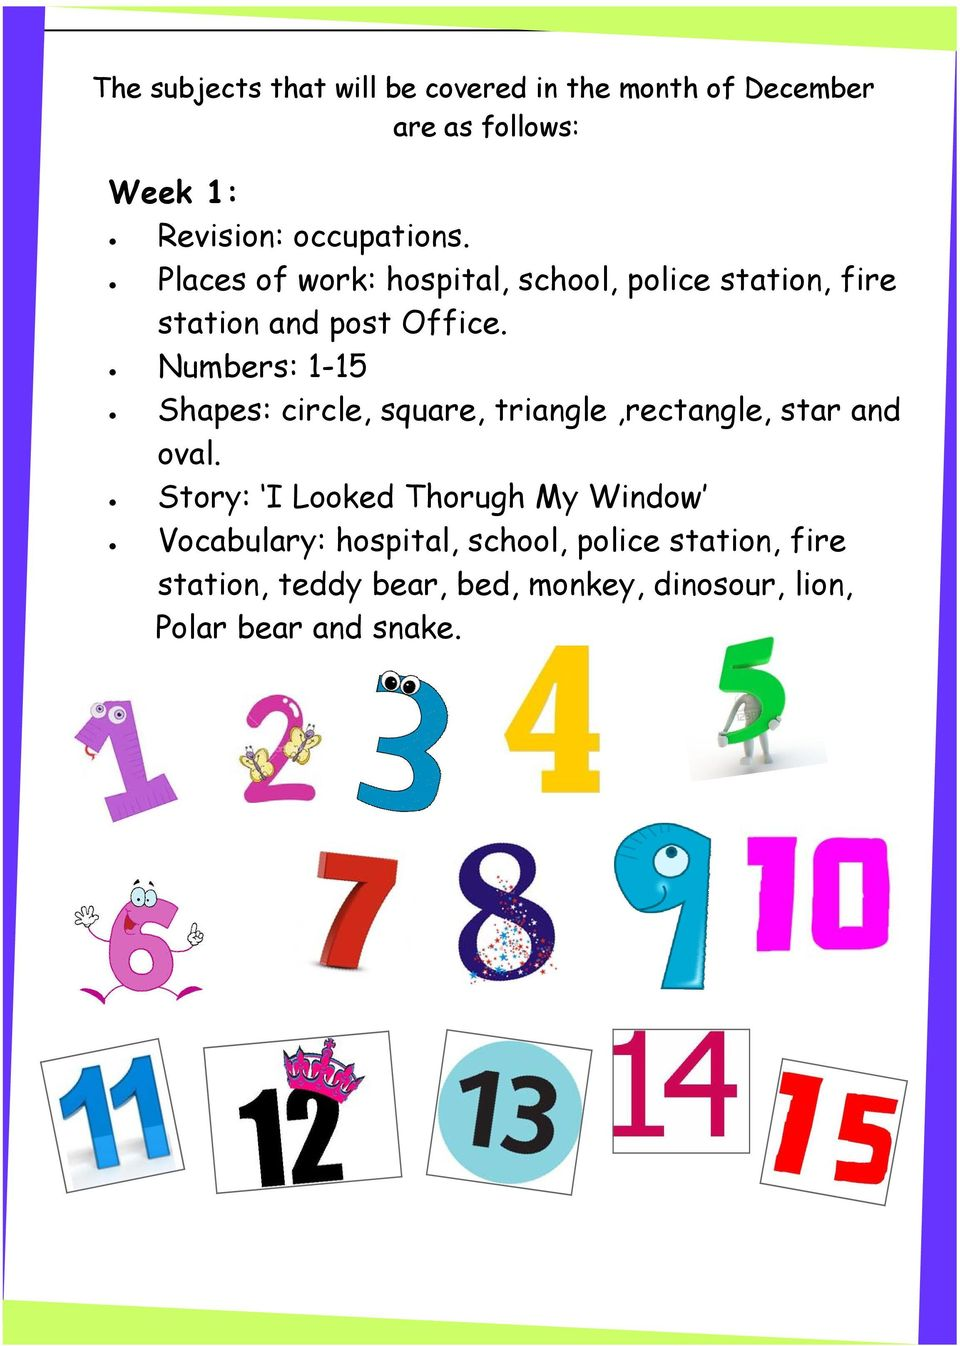 Numbers: 1-15 Shapes: circle, square, triangle,rectangle, star and oval.